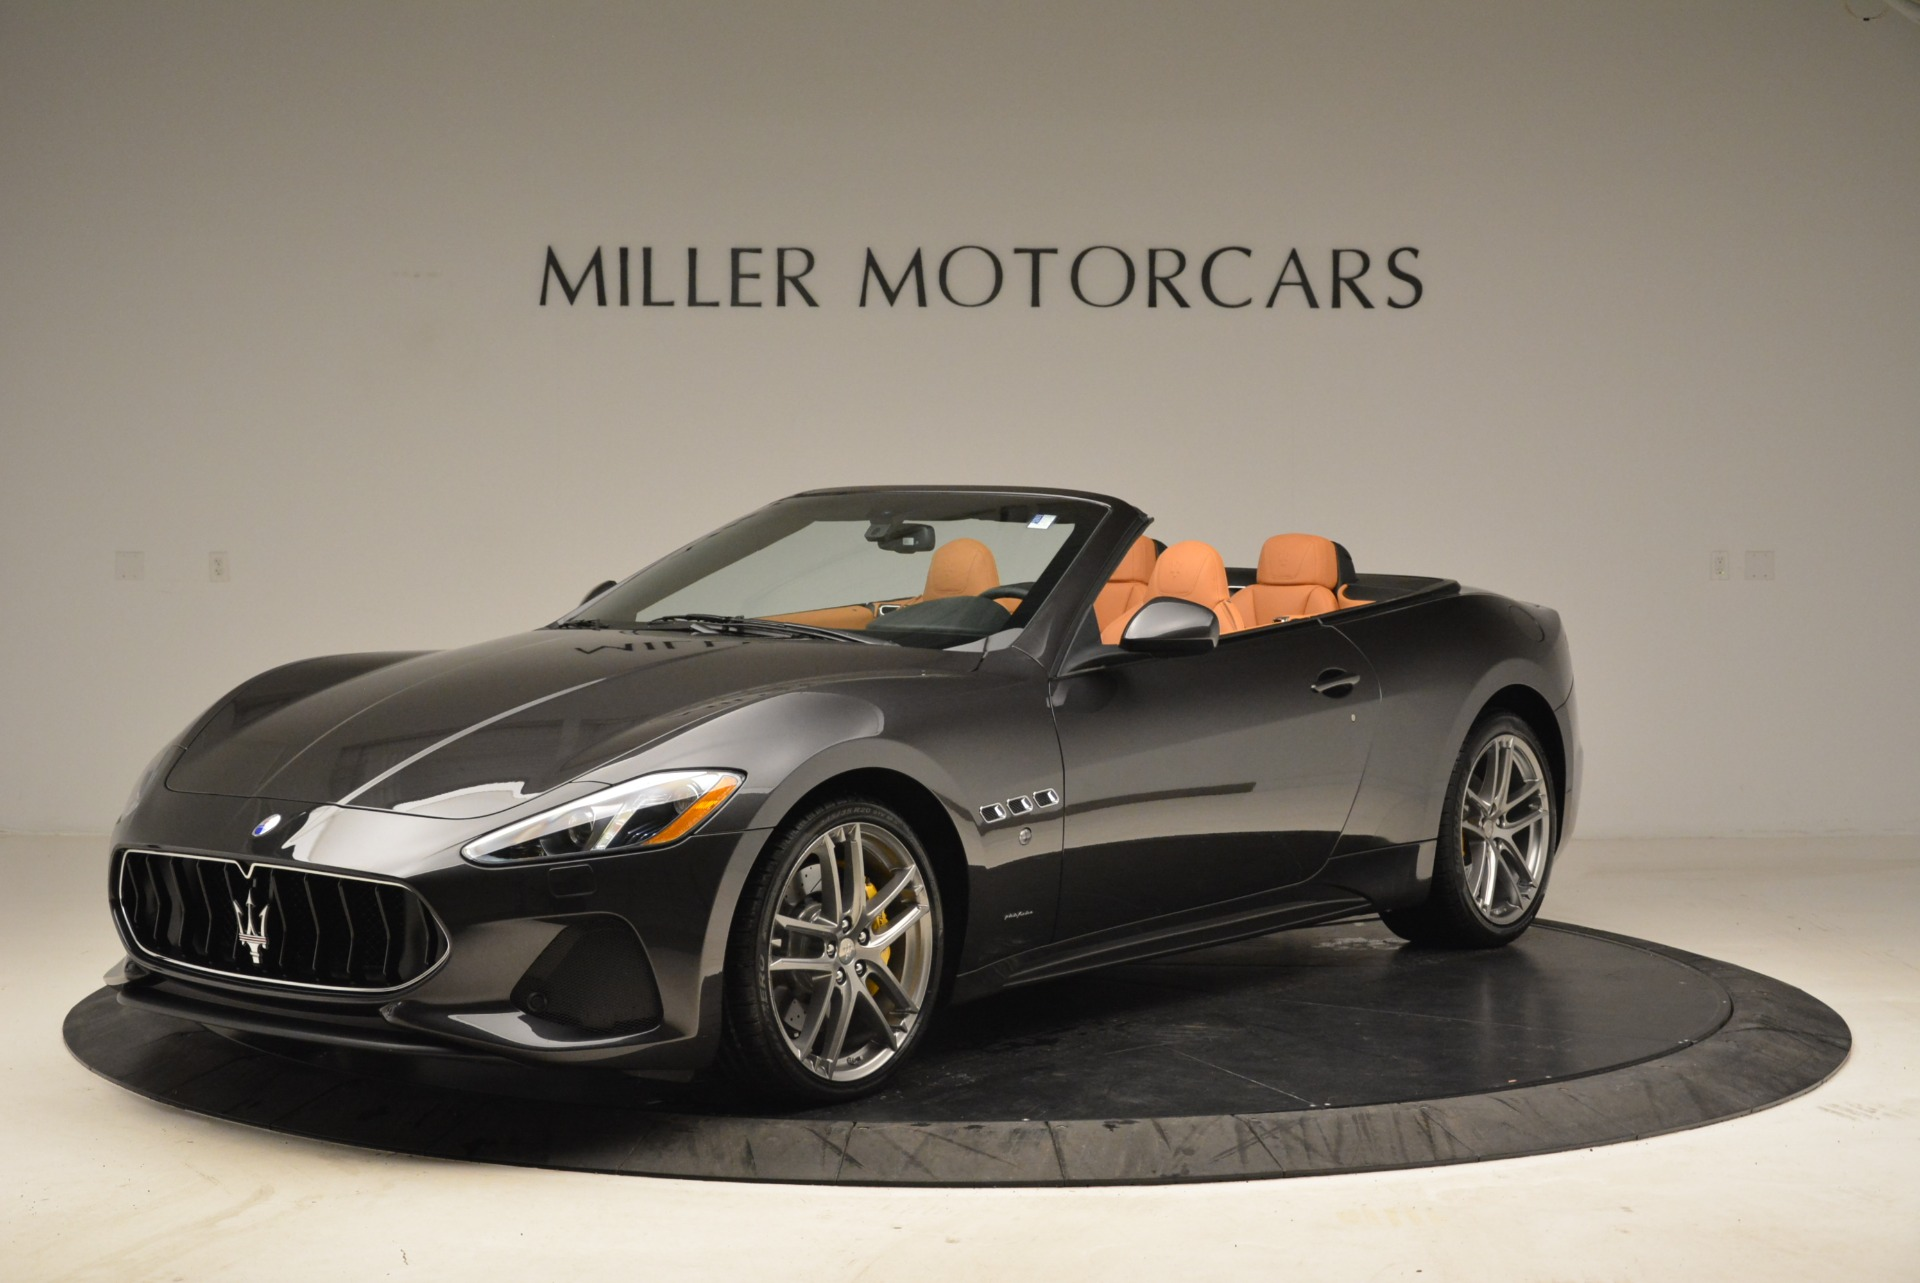 Used 2018 Maserati GranTurismo Sport Convertible for sale $92,995 at Alfa Romeo of Westport in Westport CT 06880 1